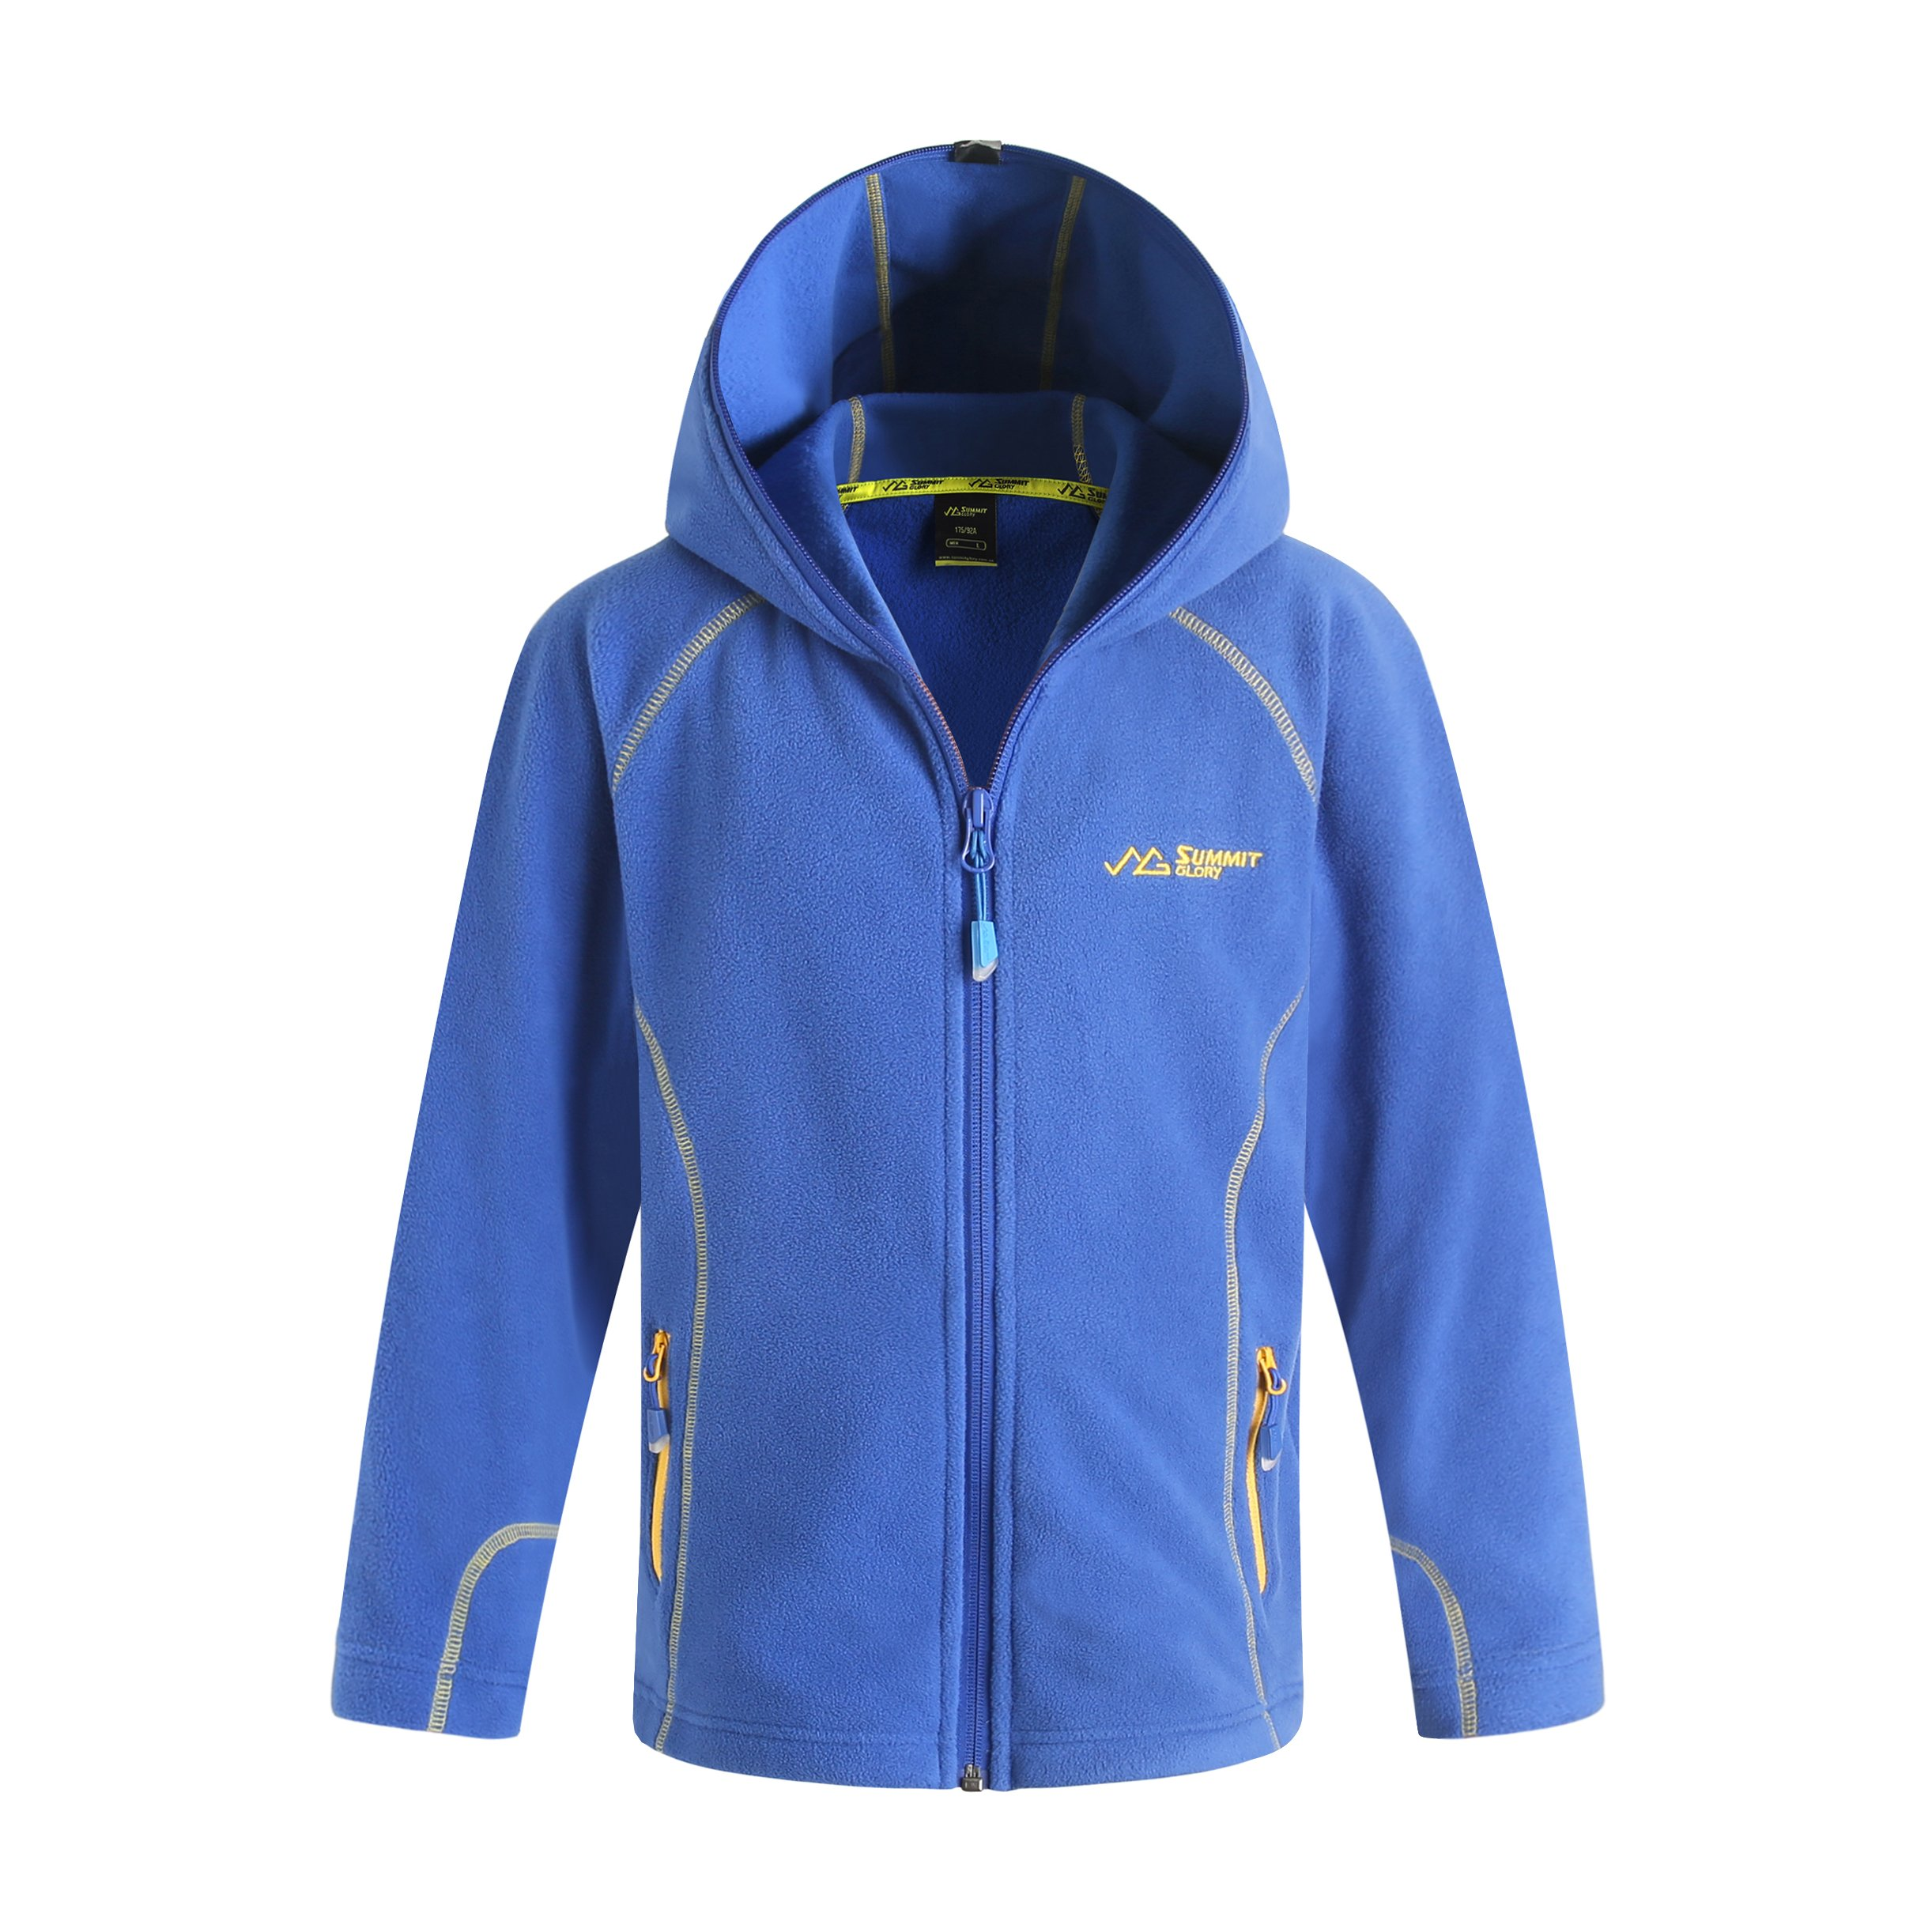 Summit Glory Kid's Full-Zip Microfleece Hoodie Jacket Blue 100